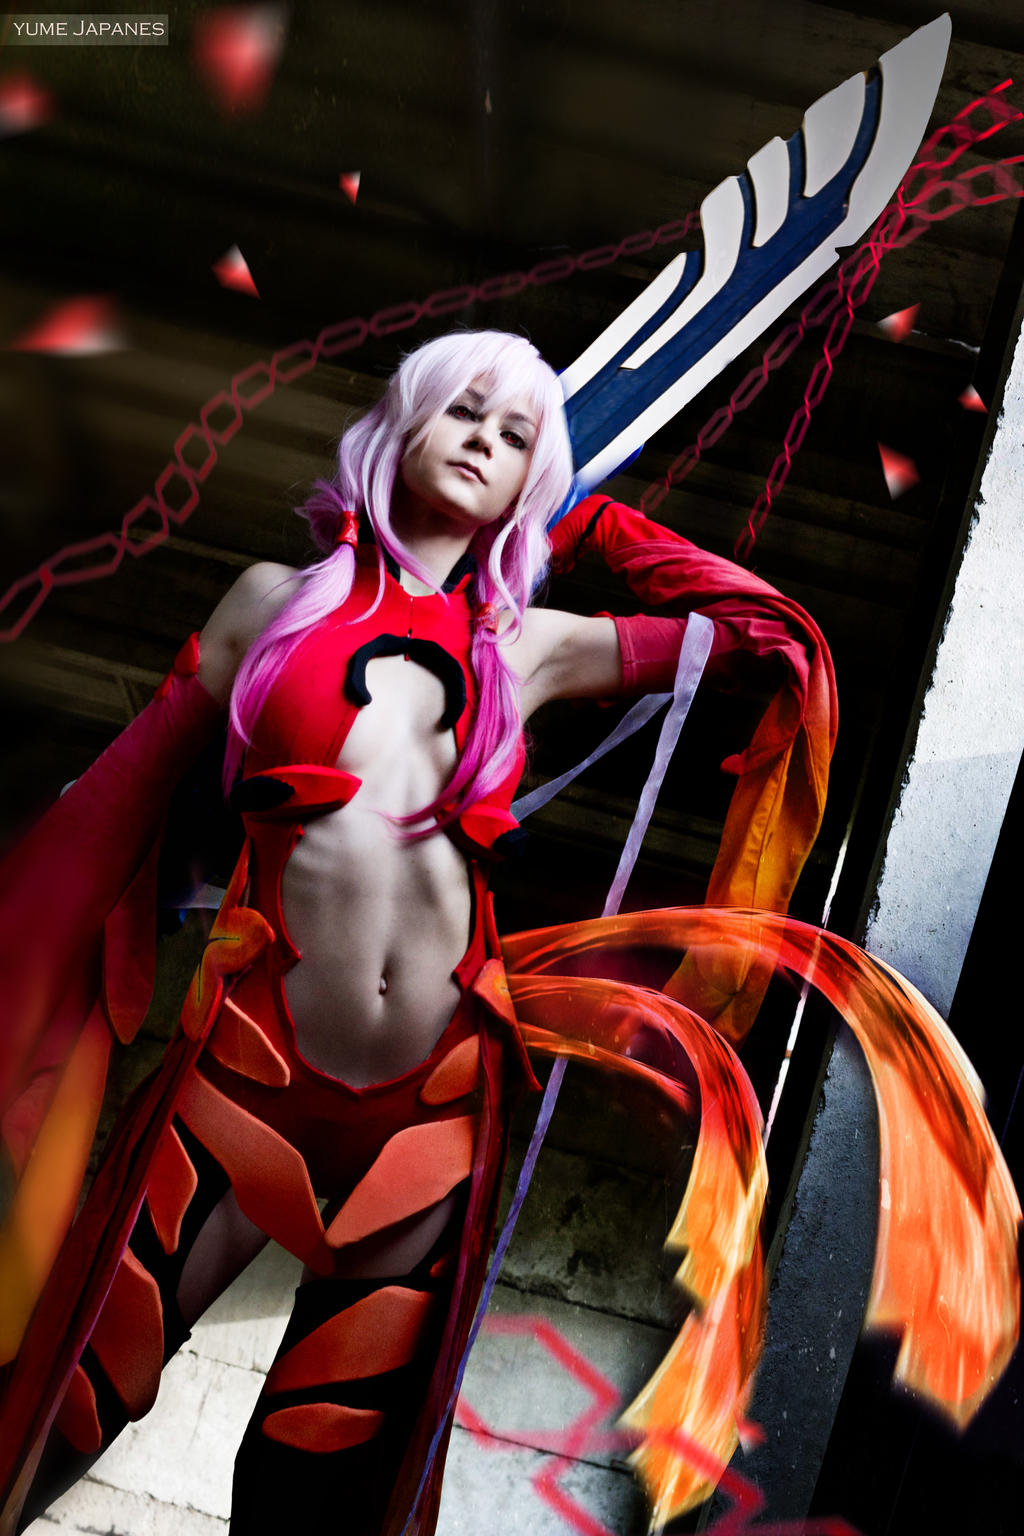 Guilty Crown: Yuzuriha Inori by YumeJapanes